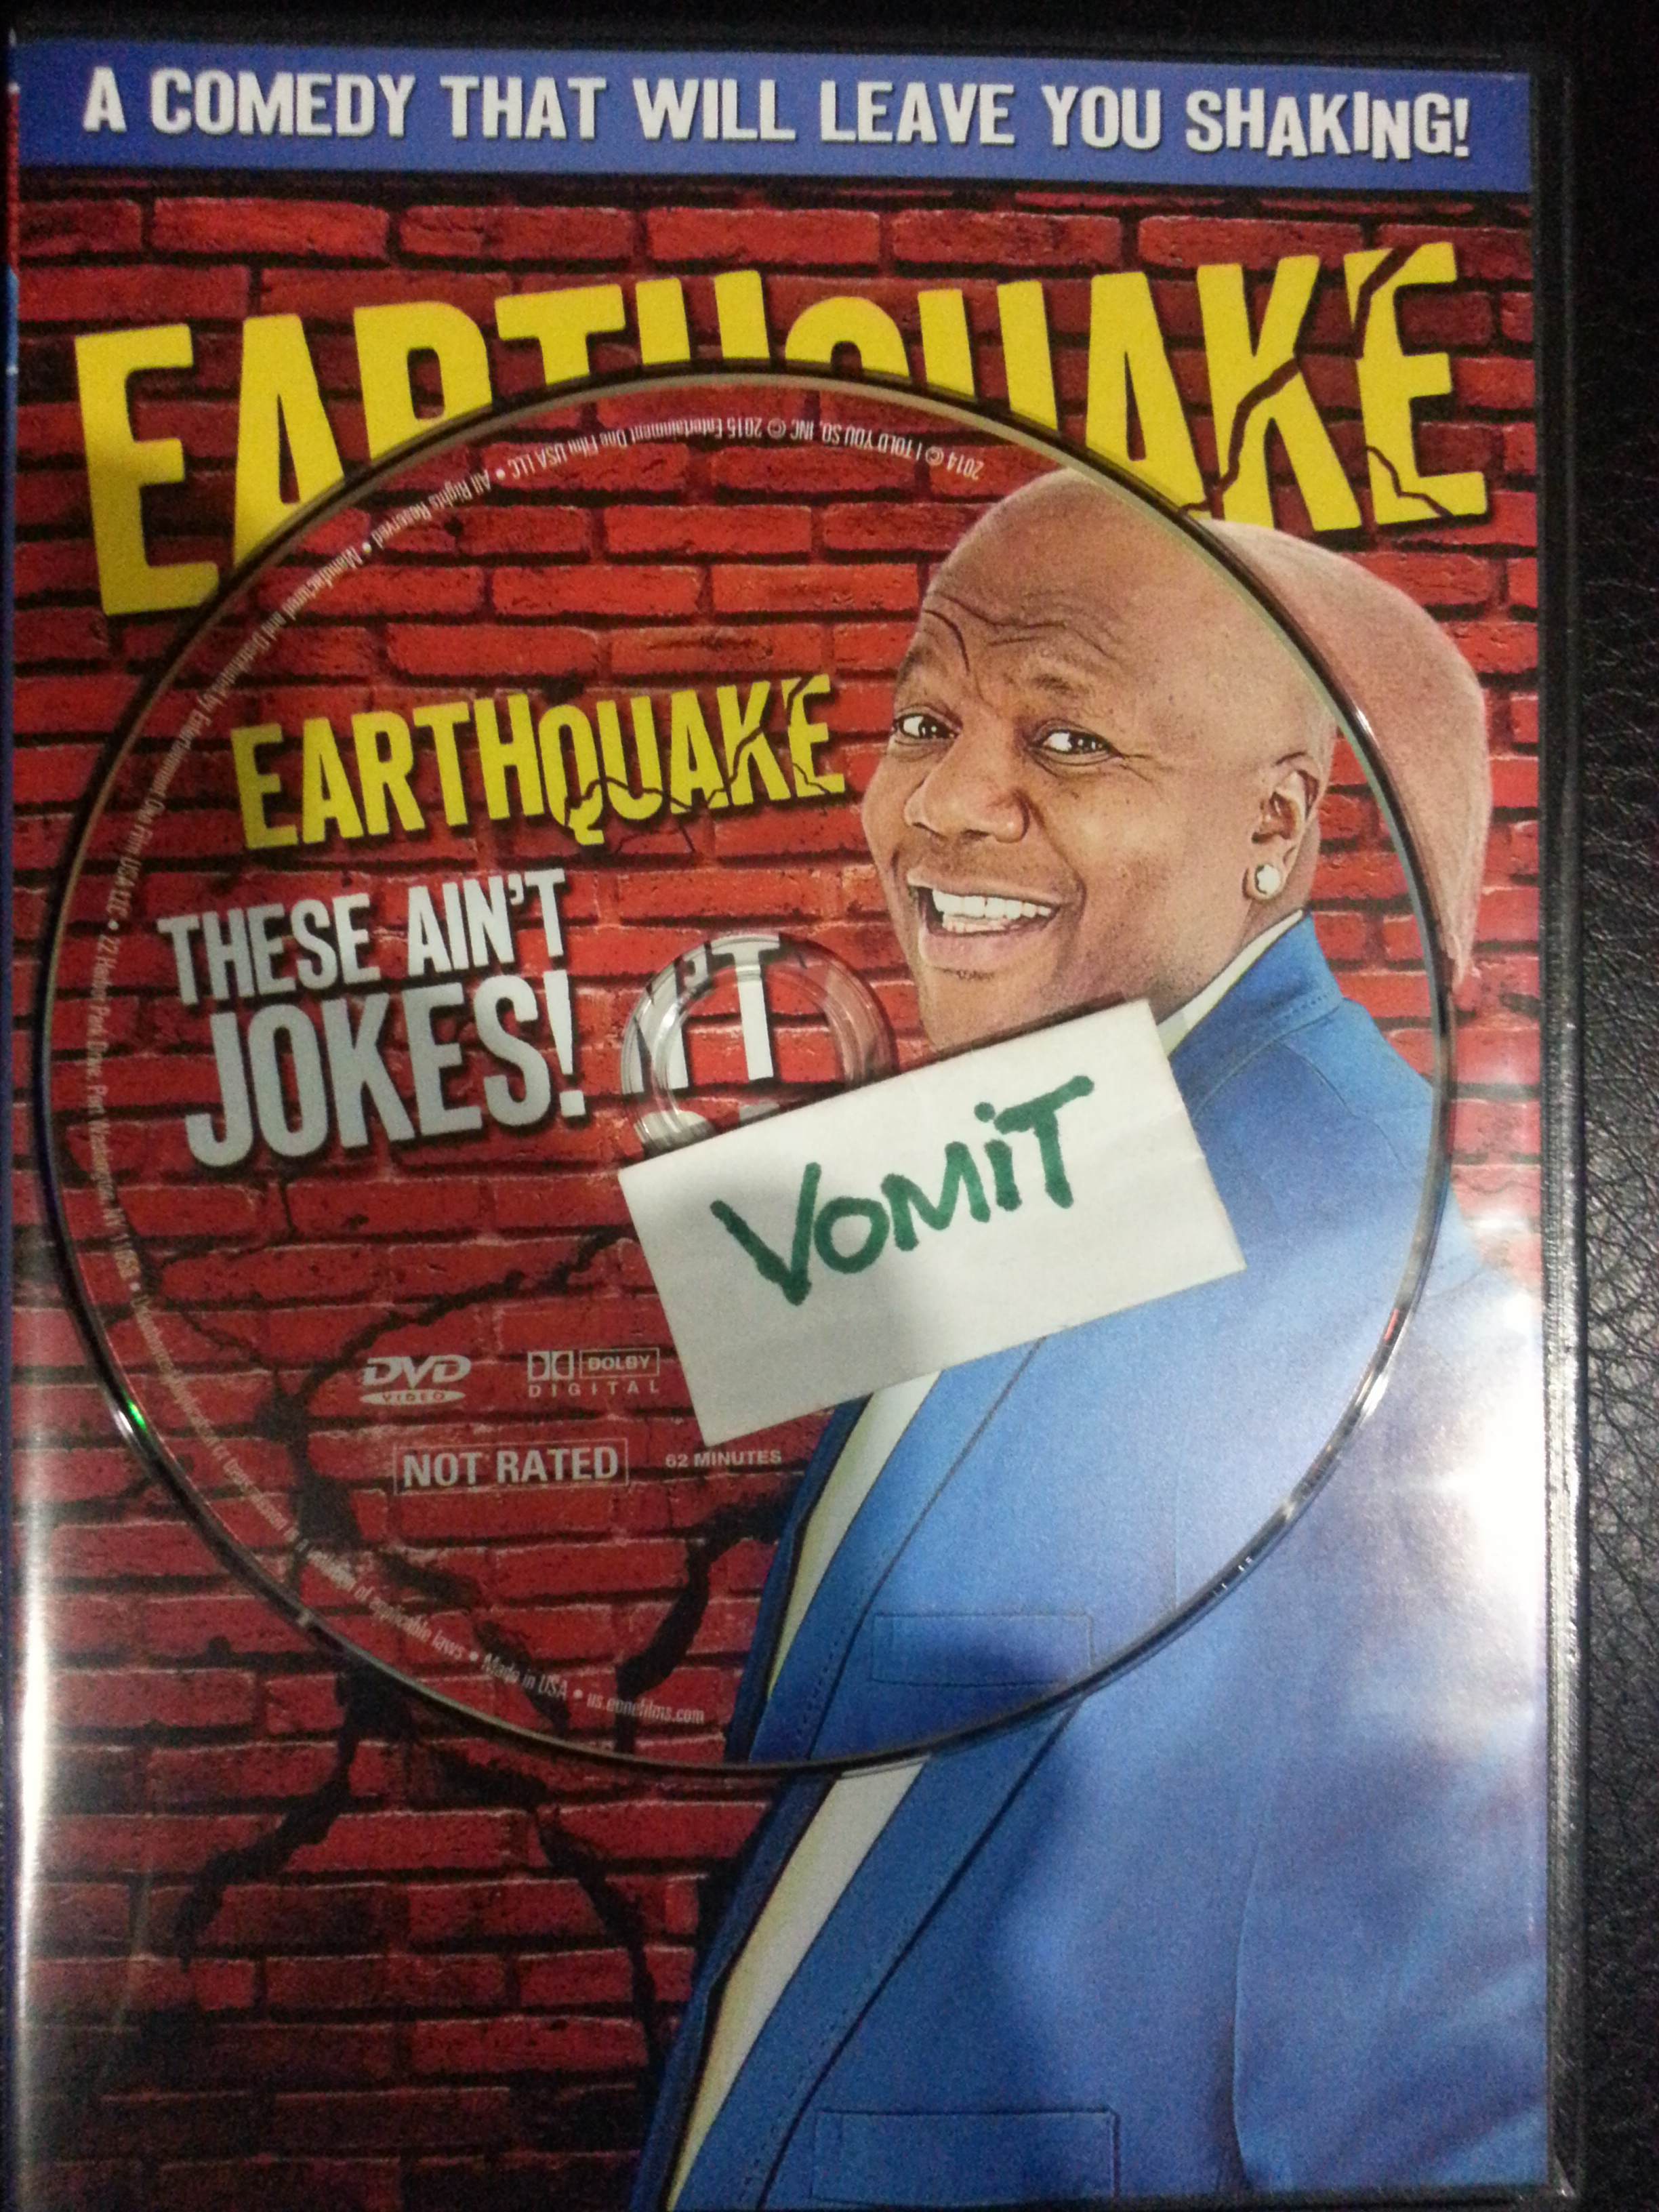 Earthquake These Aint Jokes 2014 DVDRip x264-VoMiT